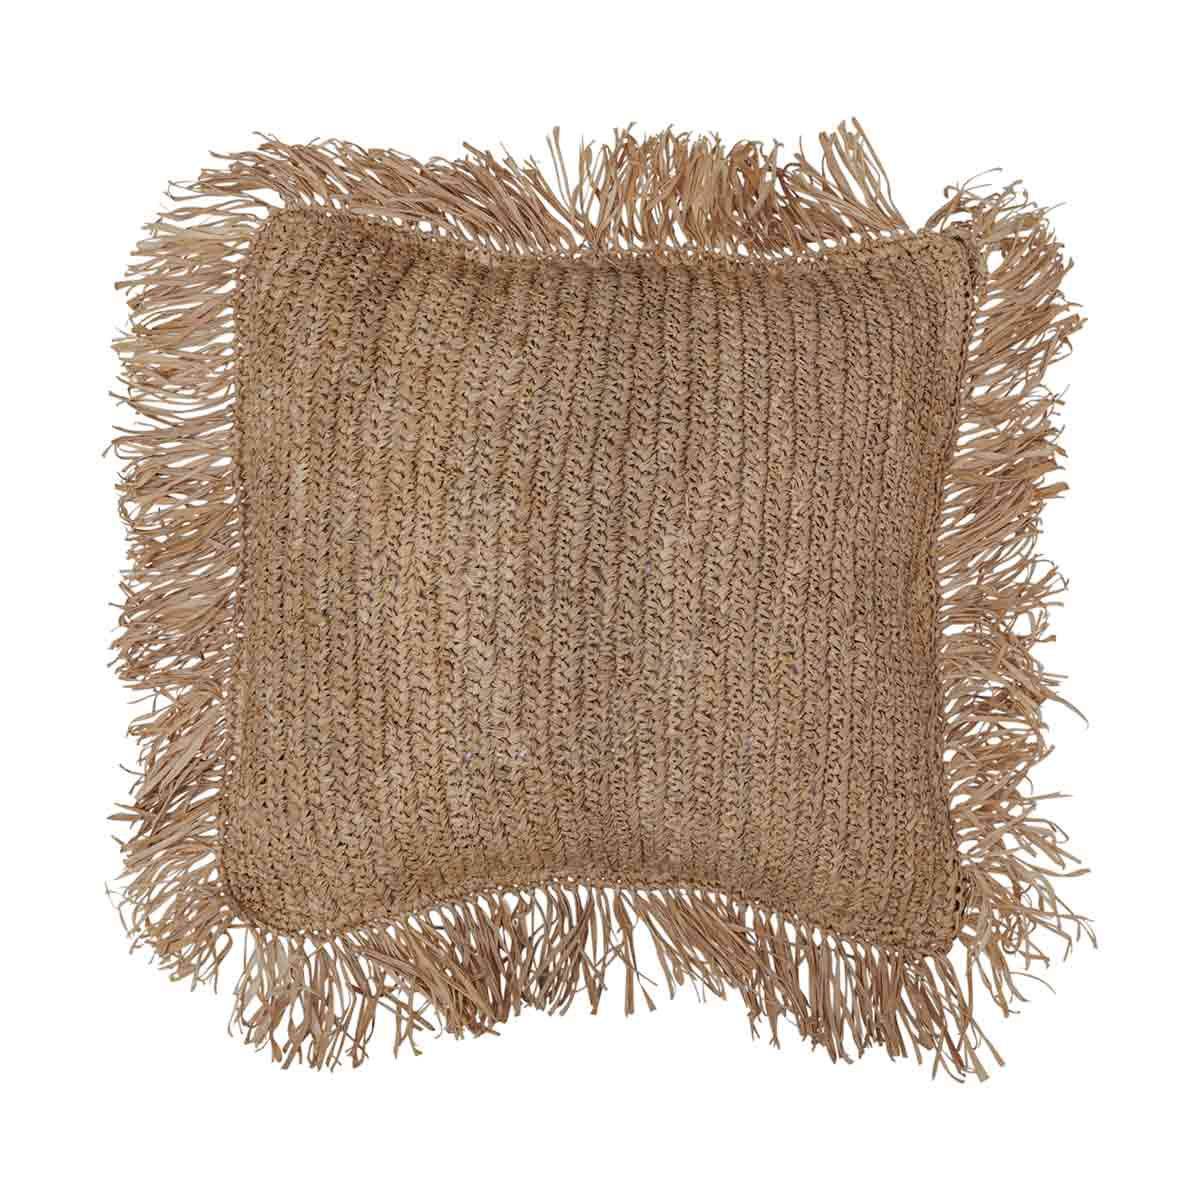 Raffia Cushion Cover 50x50cm in Natural by OzDesignFurniture, a Cushions, Decorative Pillows for sale on Style Sourcebook